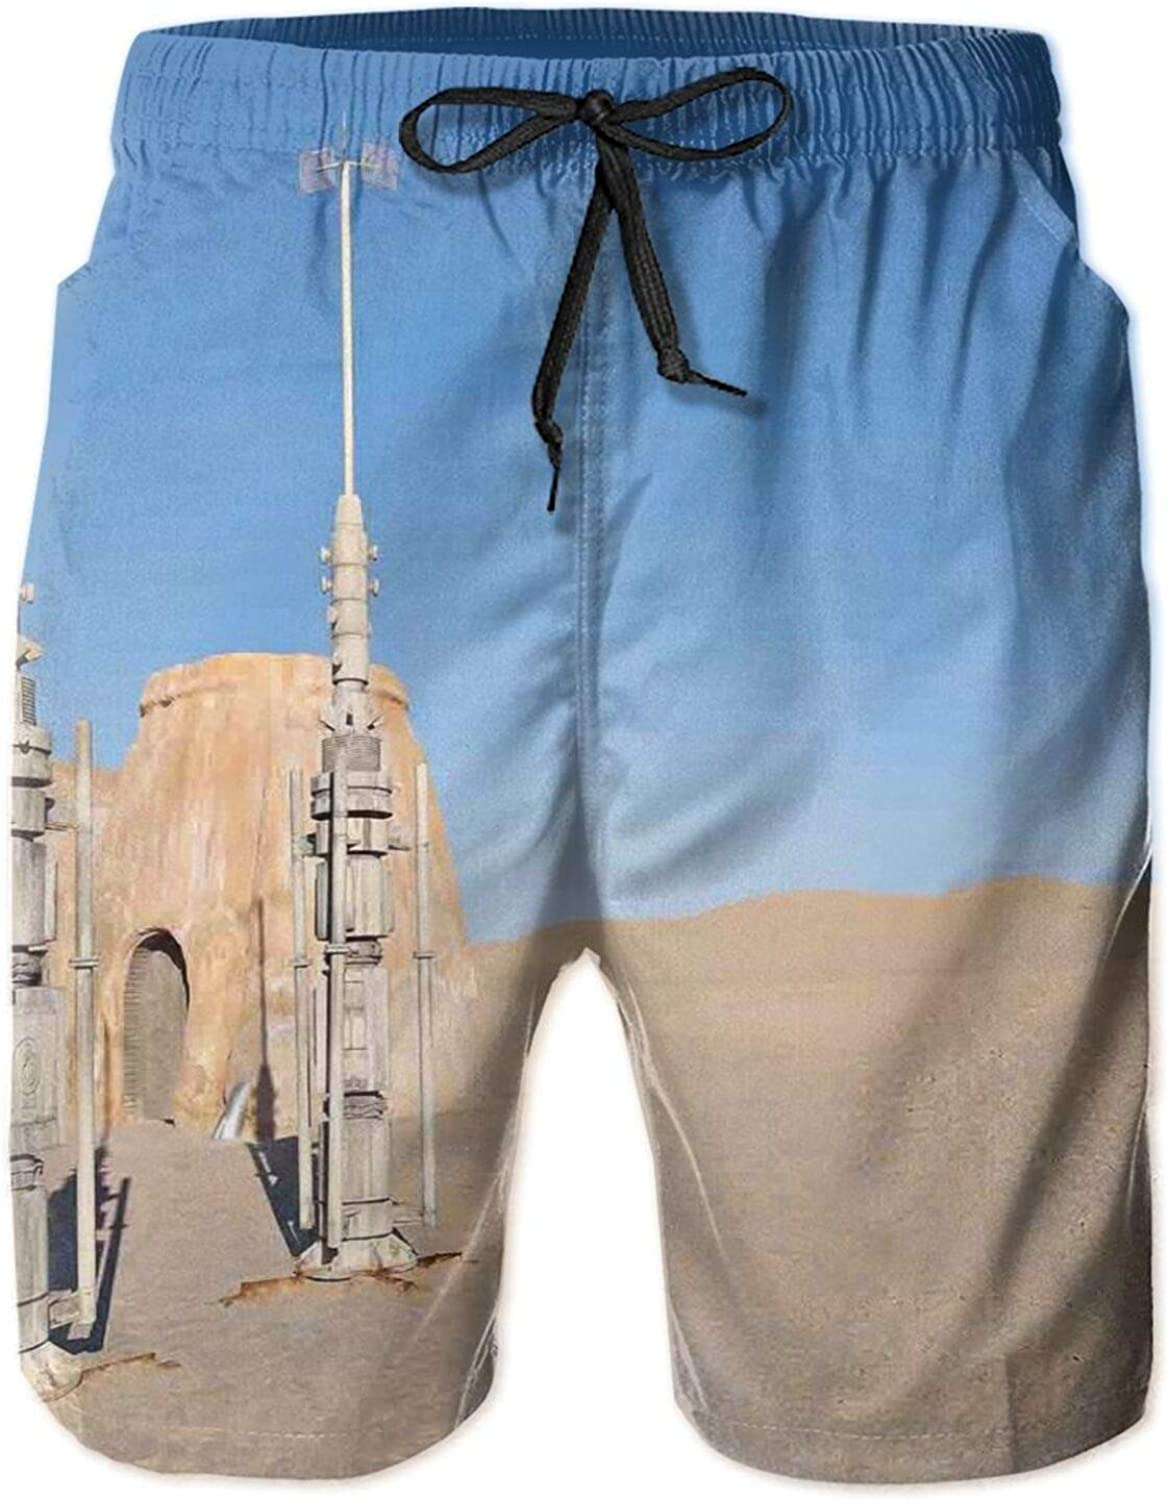 Summer Shorts for Men/Work Shorts/Beach Shorts/Pants Quick Dry with Mesh Lining and Pockets Shorts for Men Shorts